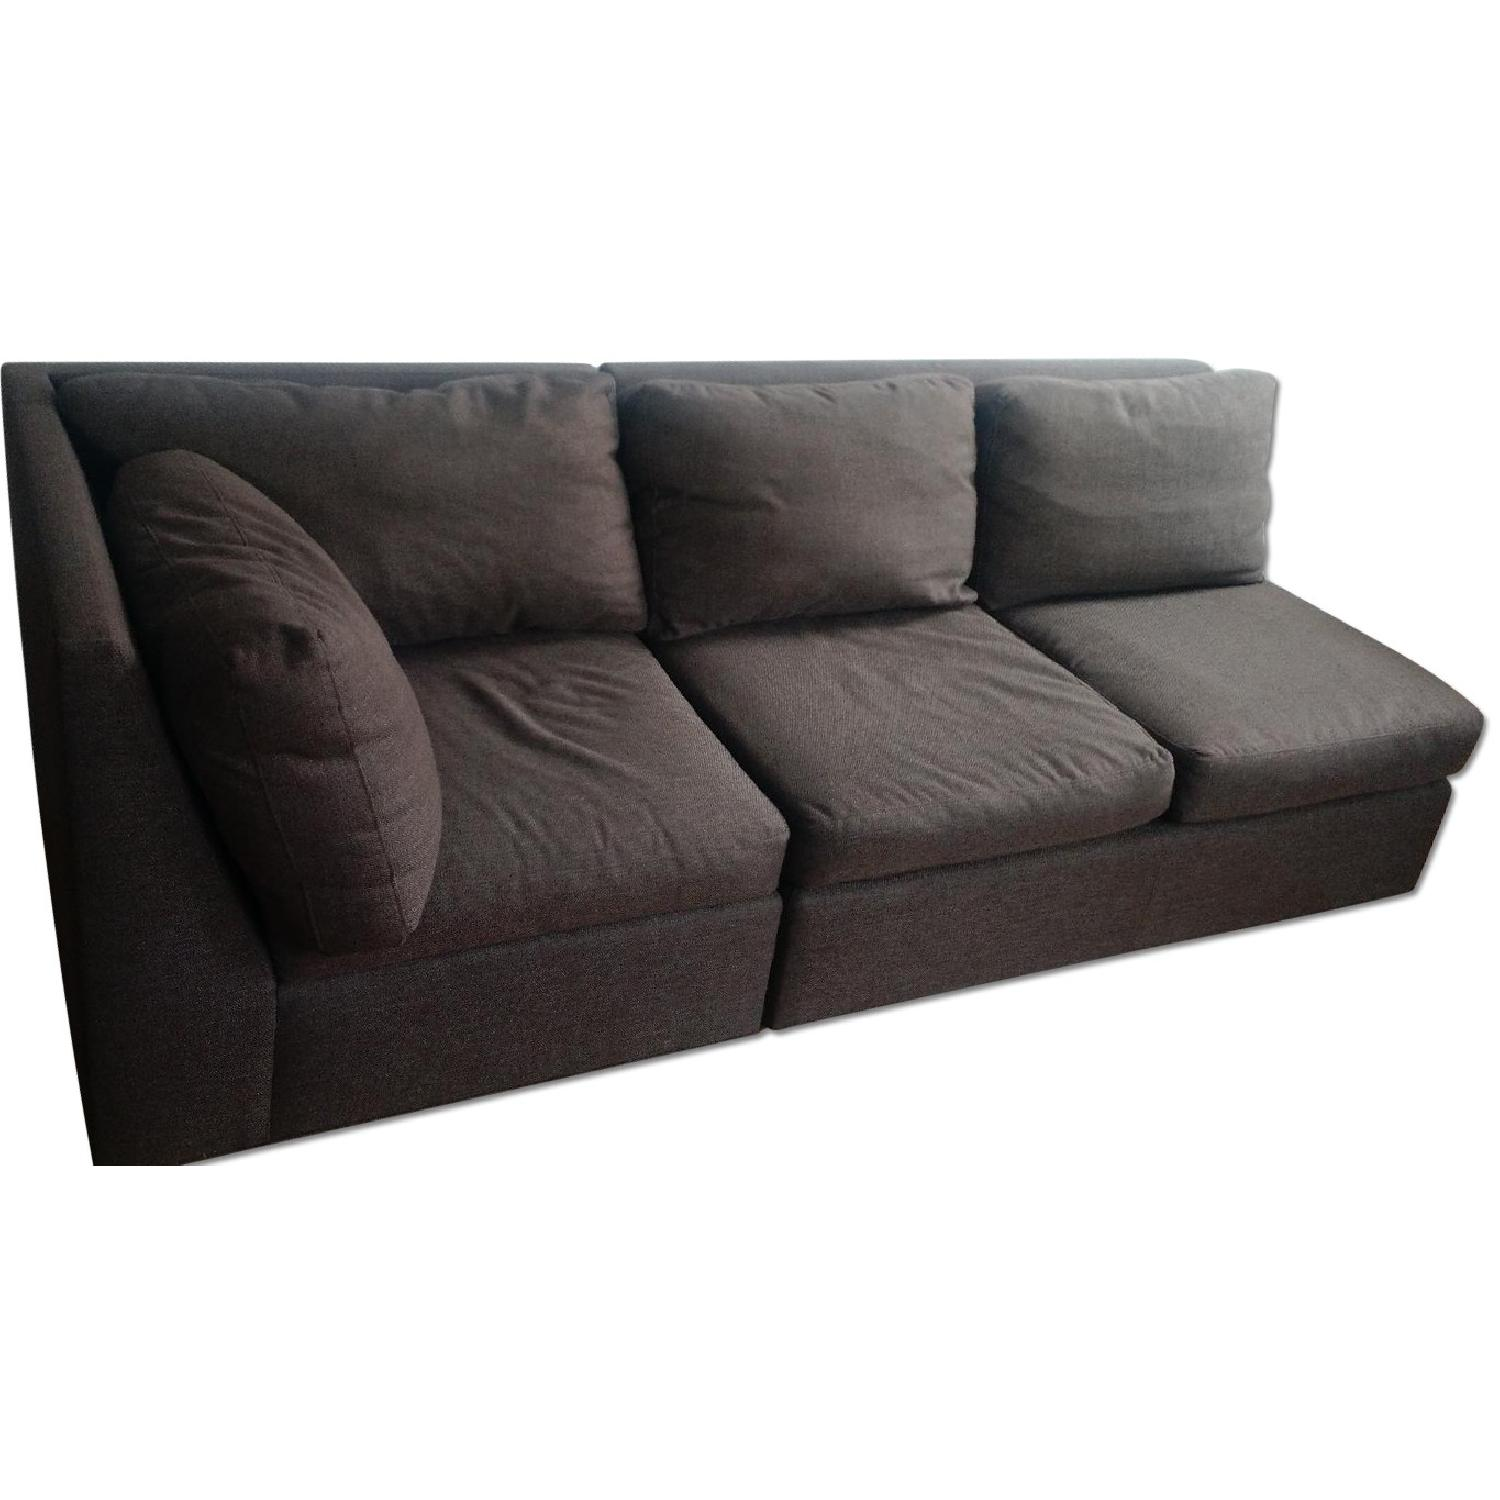 Crate & Barrel City Two-Piece Sectional - image-7